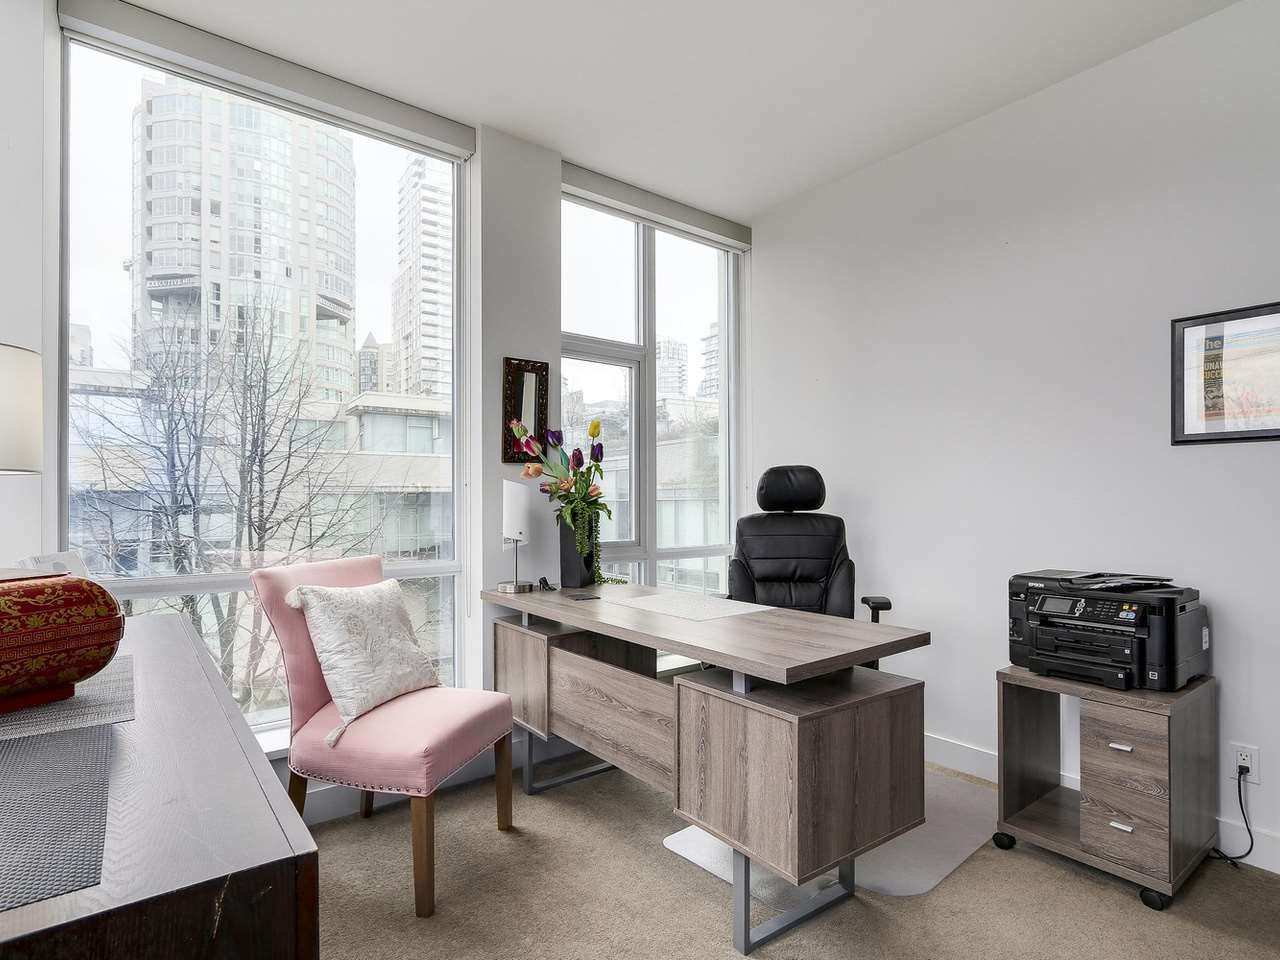 Photo 13: Photos: 401 1455 HOWE STREET in Vancouver: Yaletown Condo for sale (Vancouver West)  : MLS®# R2145939